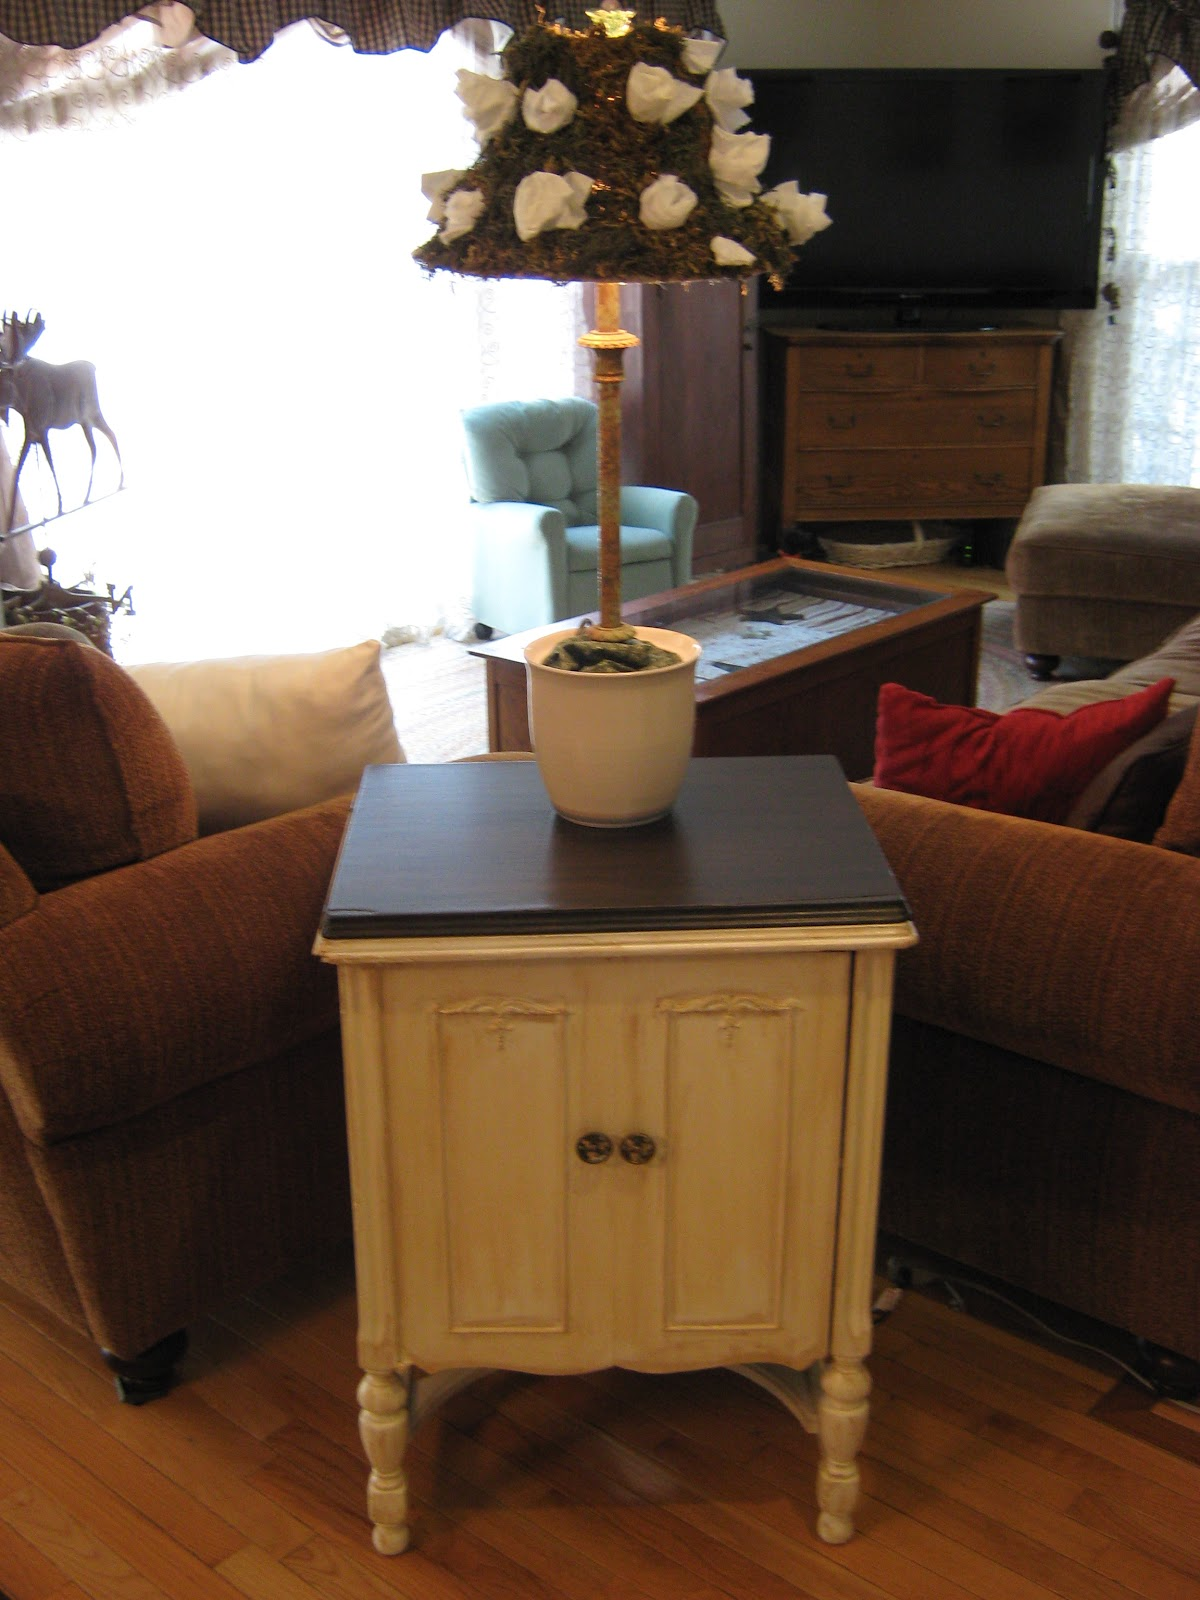 Country French Sofas Living Room Furniture: Fake-It Frugal: Fake French Country Furniture, The Side